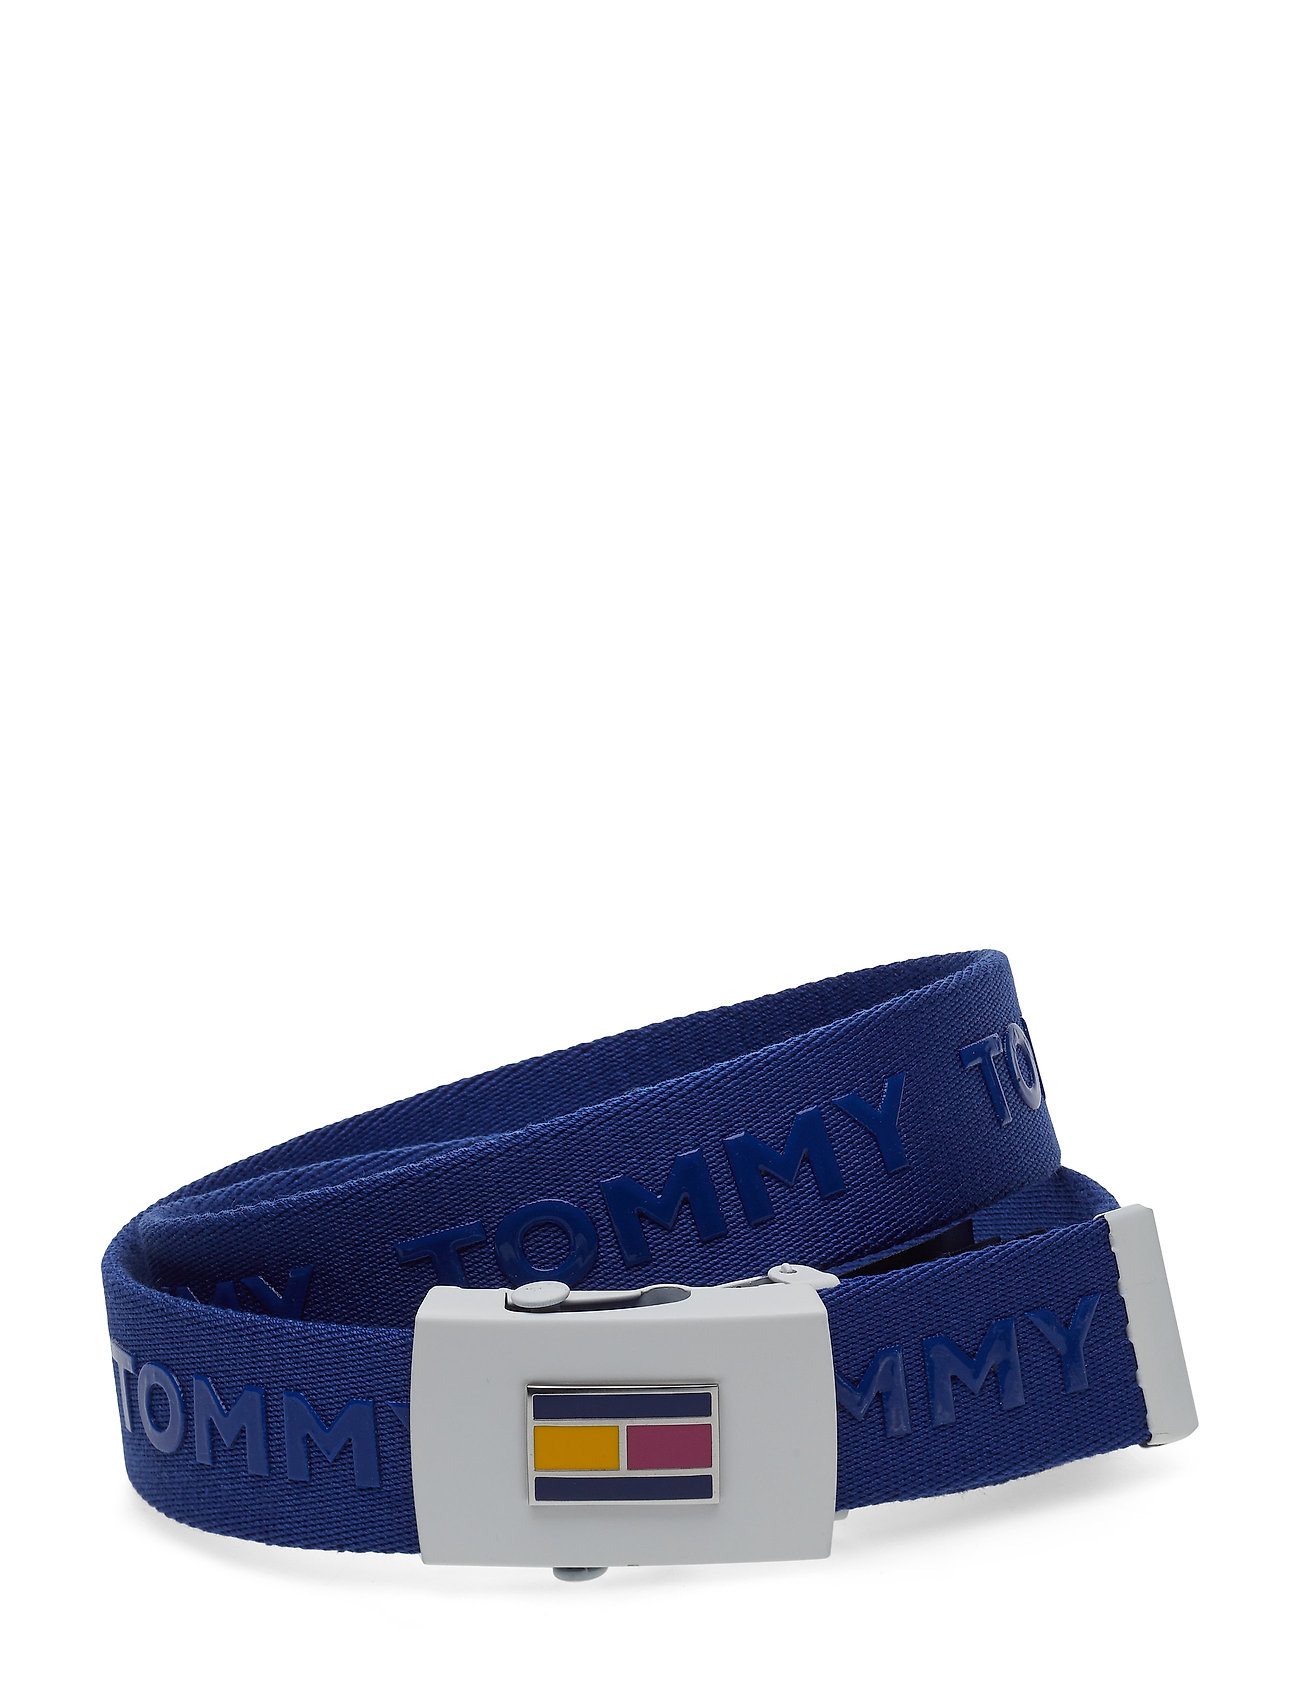 Tommy Hilfiger KIDS WEBBING BELT, 9 - BLUE